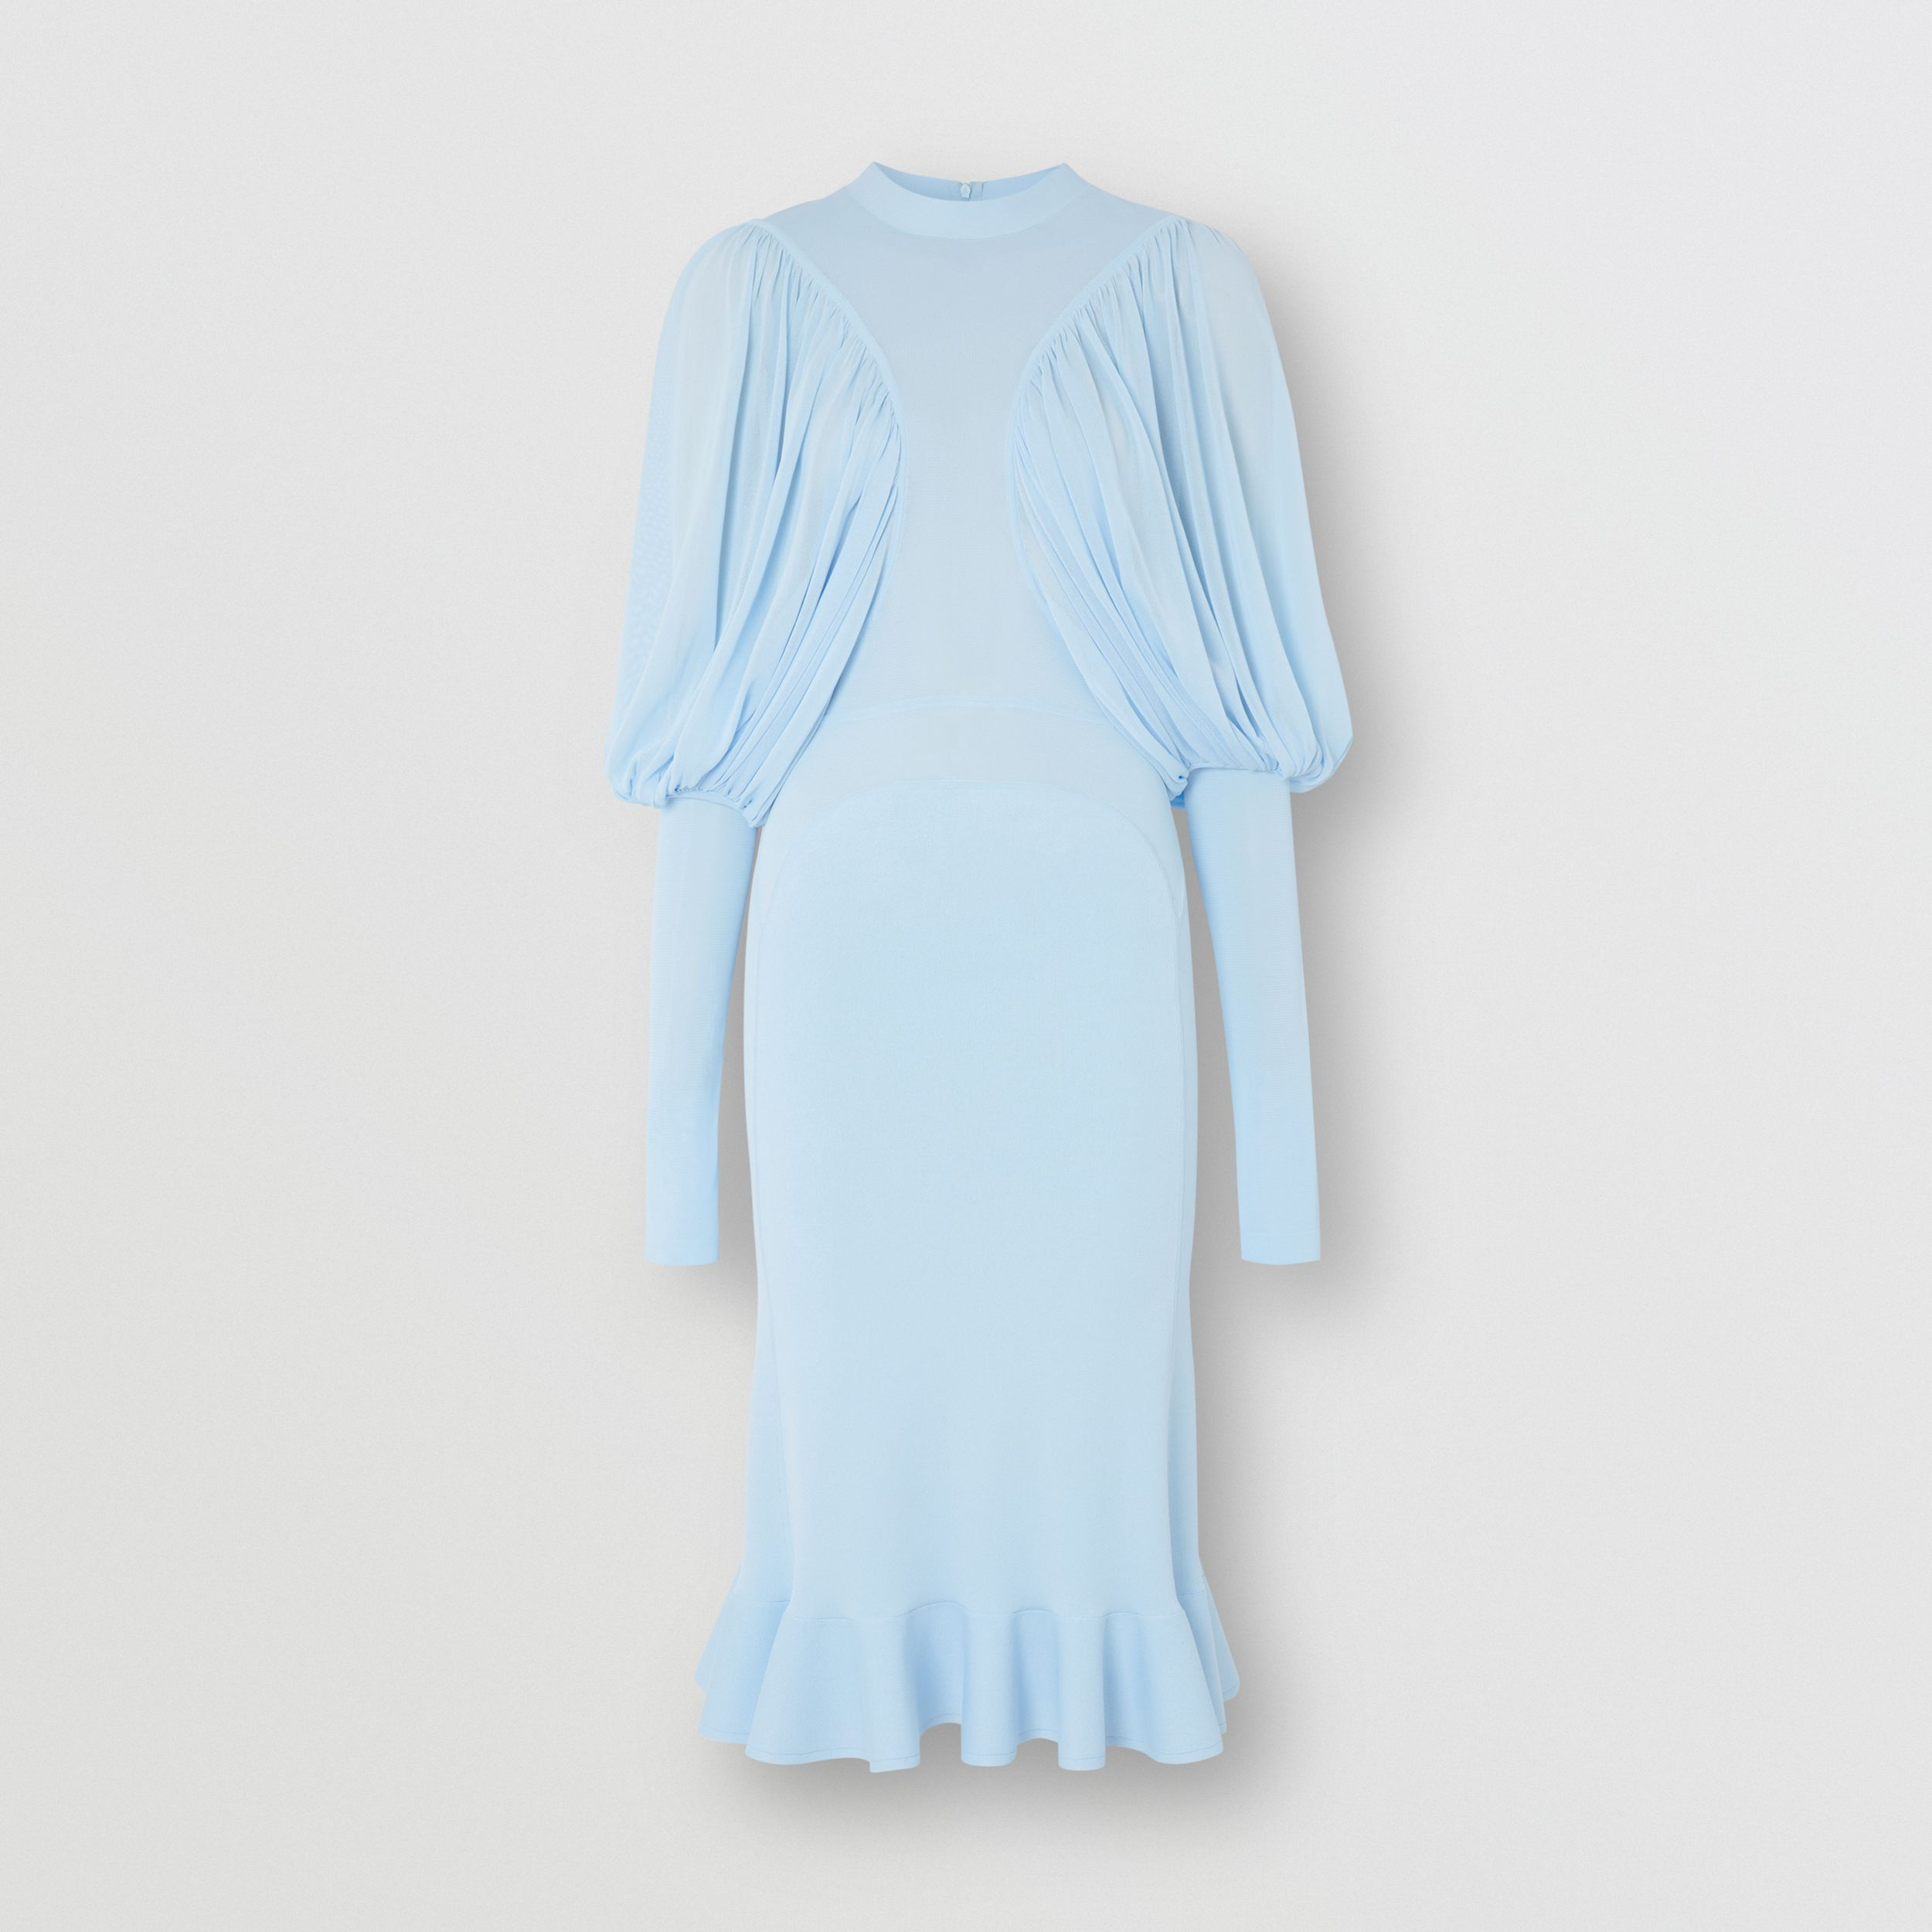 Puff-sleeve Jersey Dress in Pale Blue - Women | Burberry Canada - 4